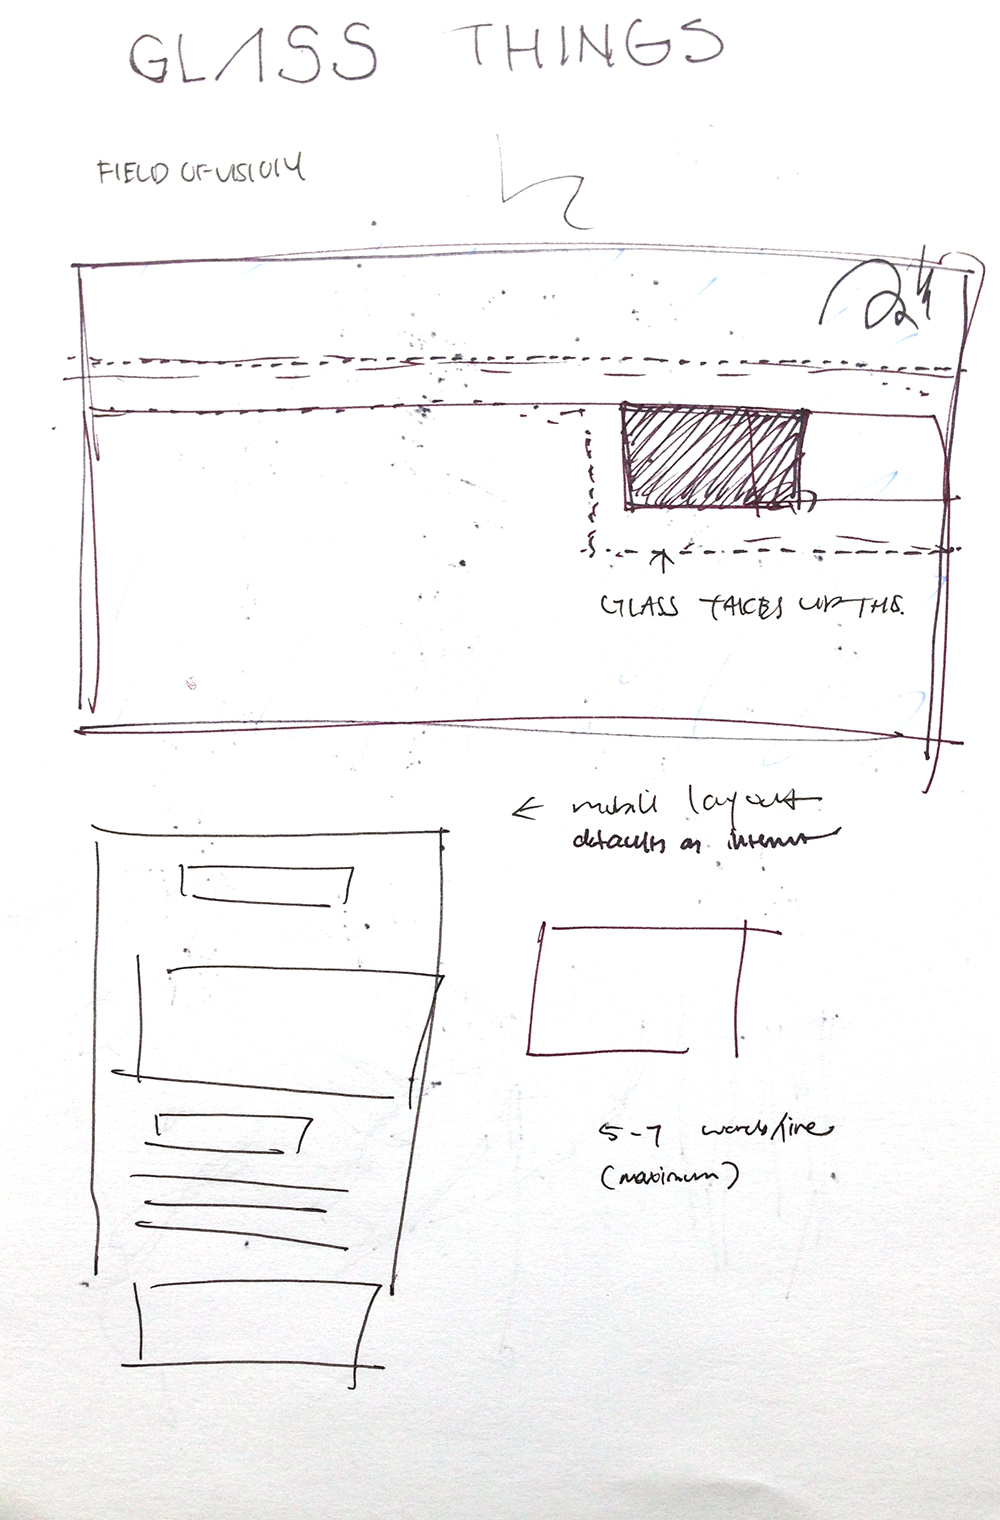 a sketch comparison of Glass vs. field of vision vs. mobile